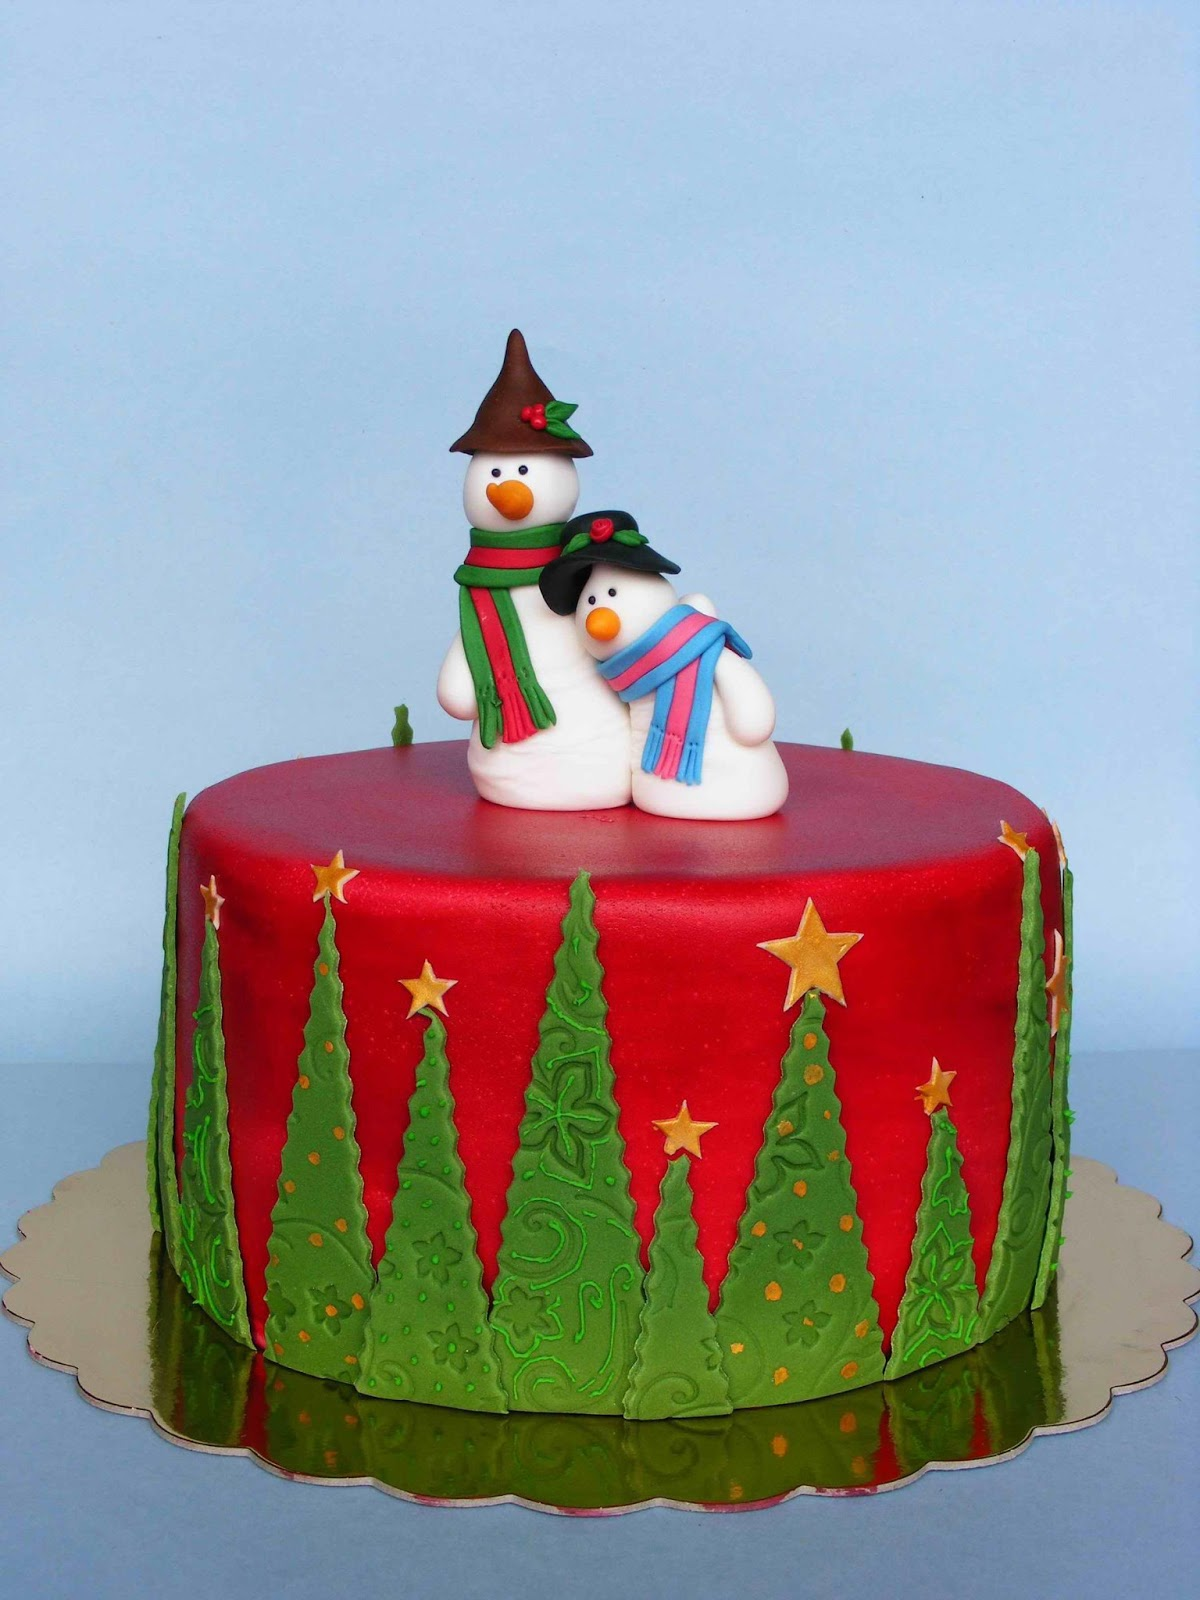 Cake Decorating Designs Christmas : 1000+ images about Single Tier Cakes on Pinterest ...